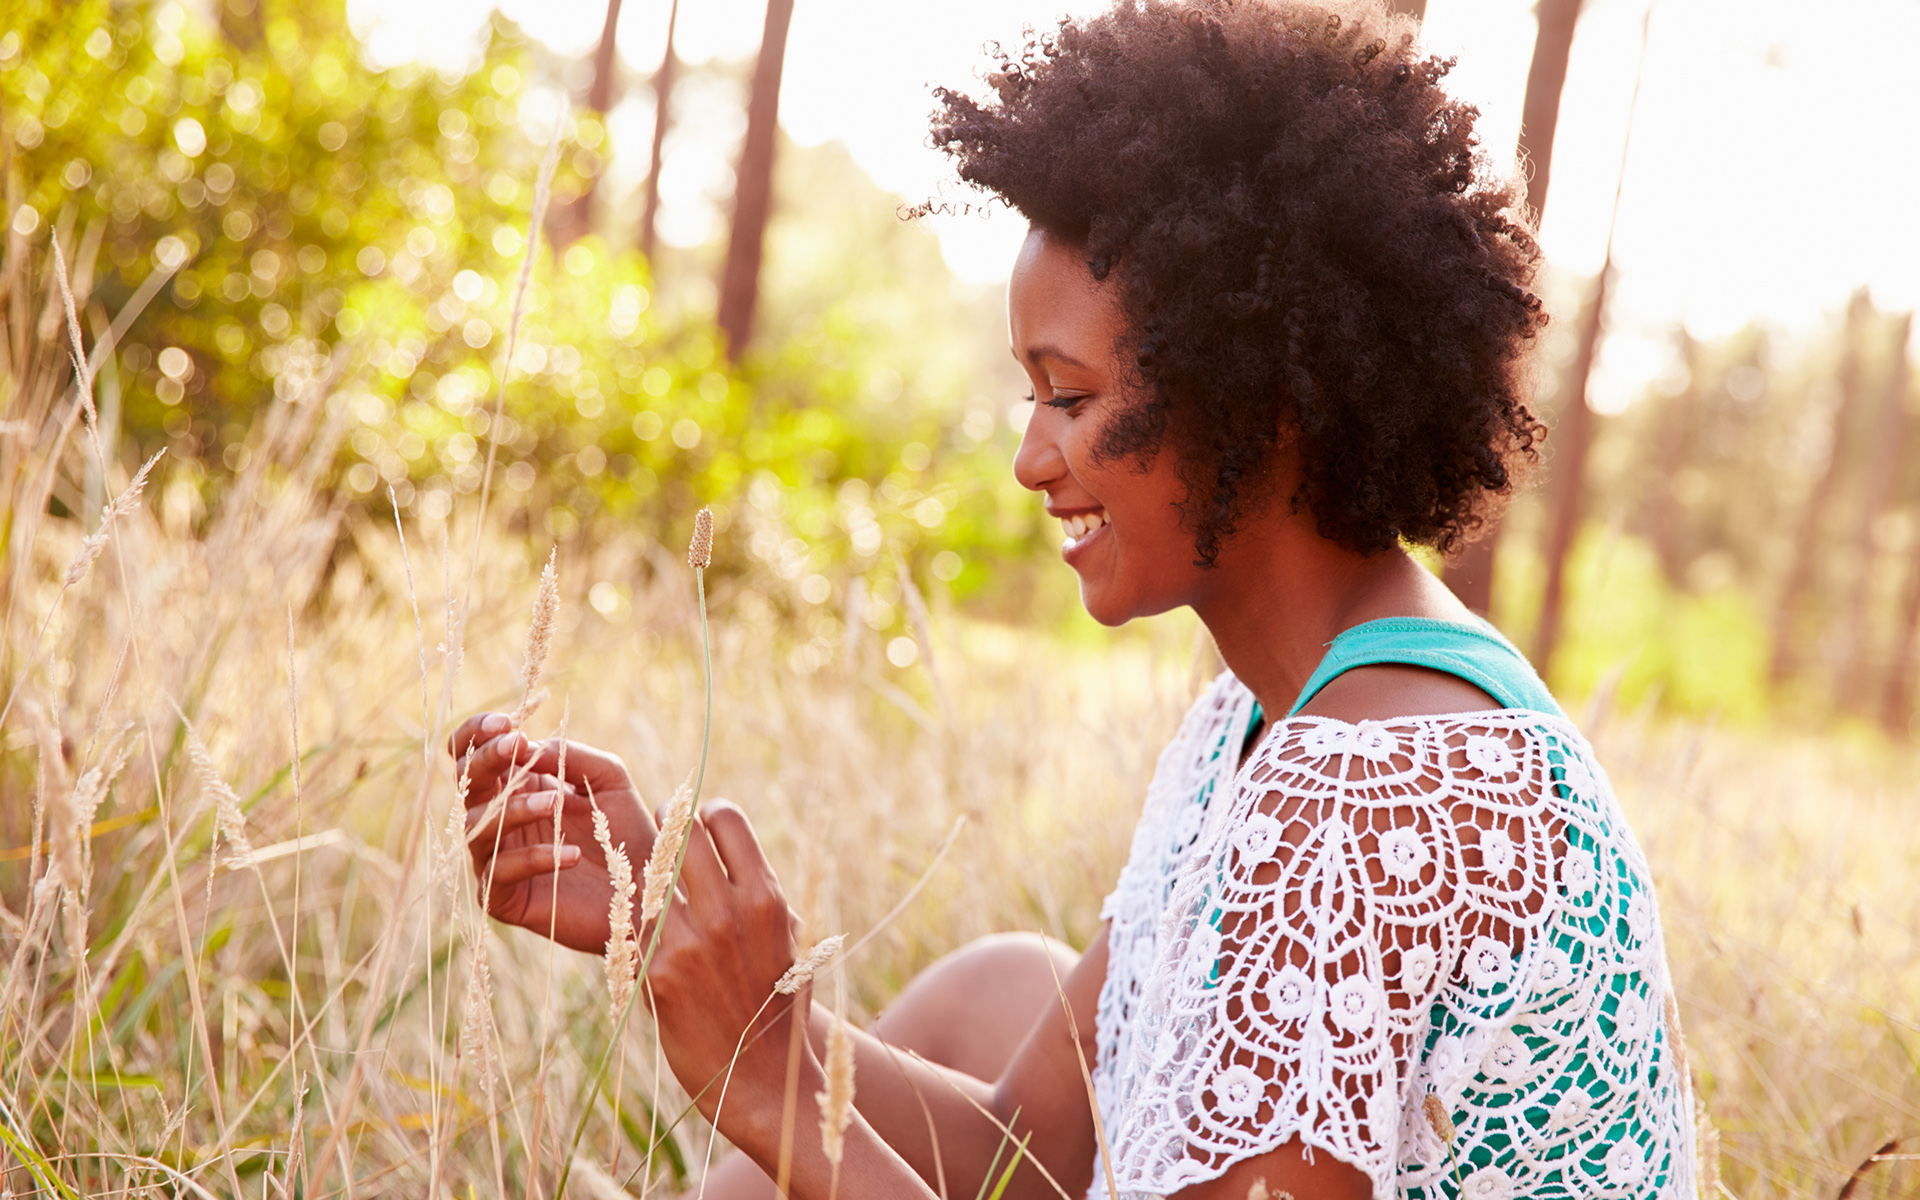 12-Minute Meditation to Cultivate Presence and Awareness - Portrait Of Smiling Young Woman Sitting In Countryside